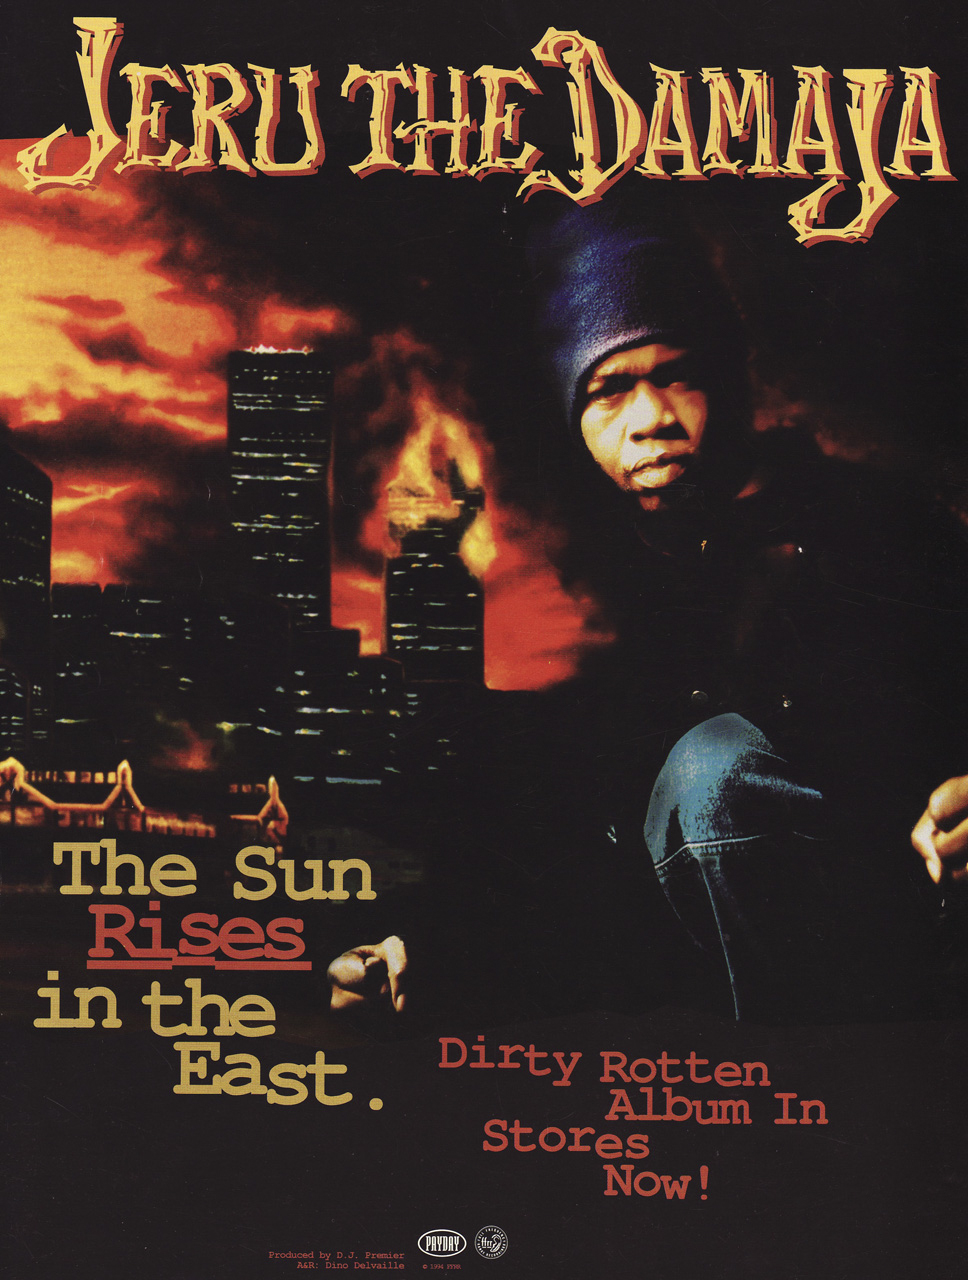 Jeru The Damaja The Sun Rises In The East Advertisement 1994